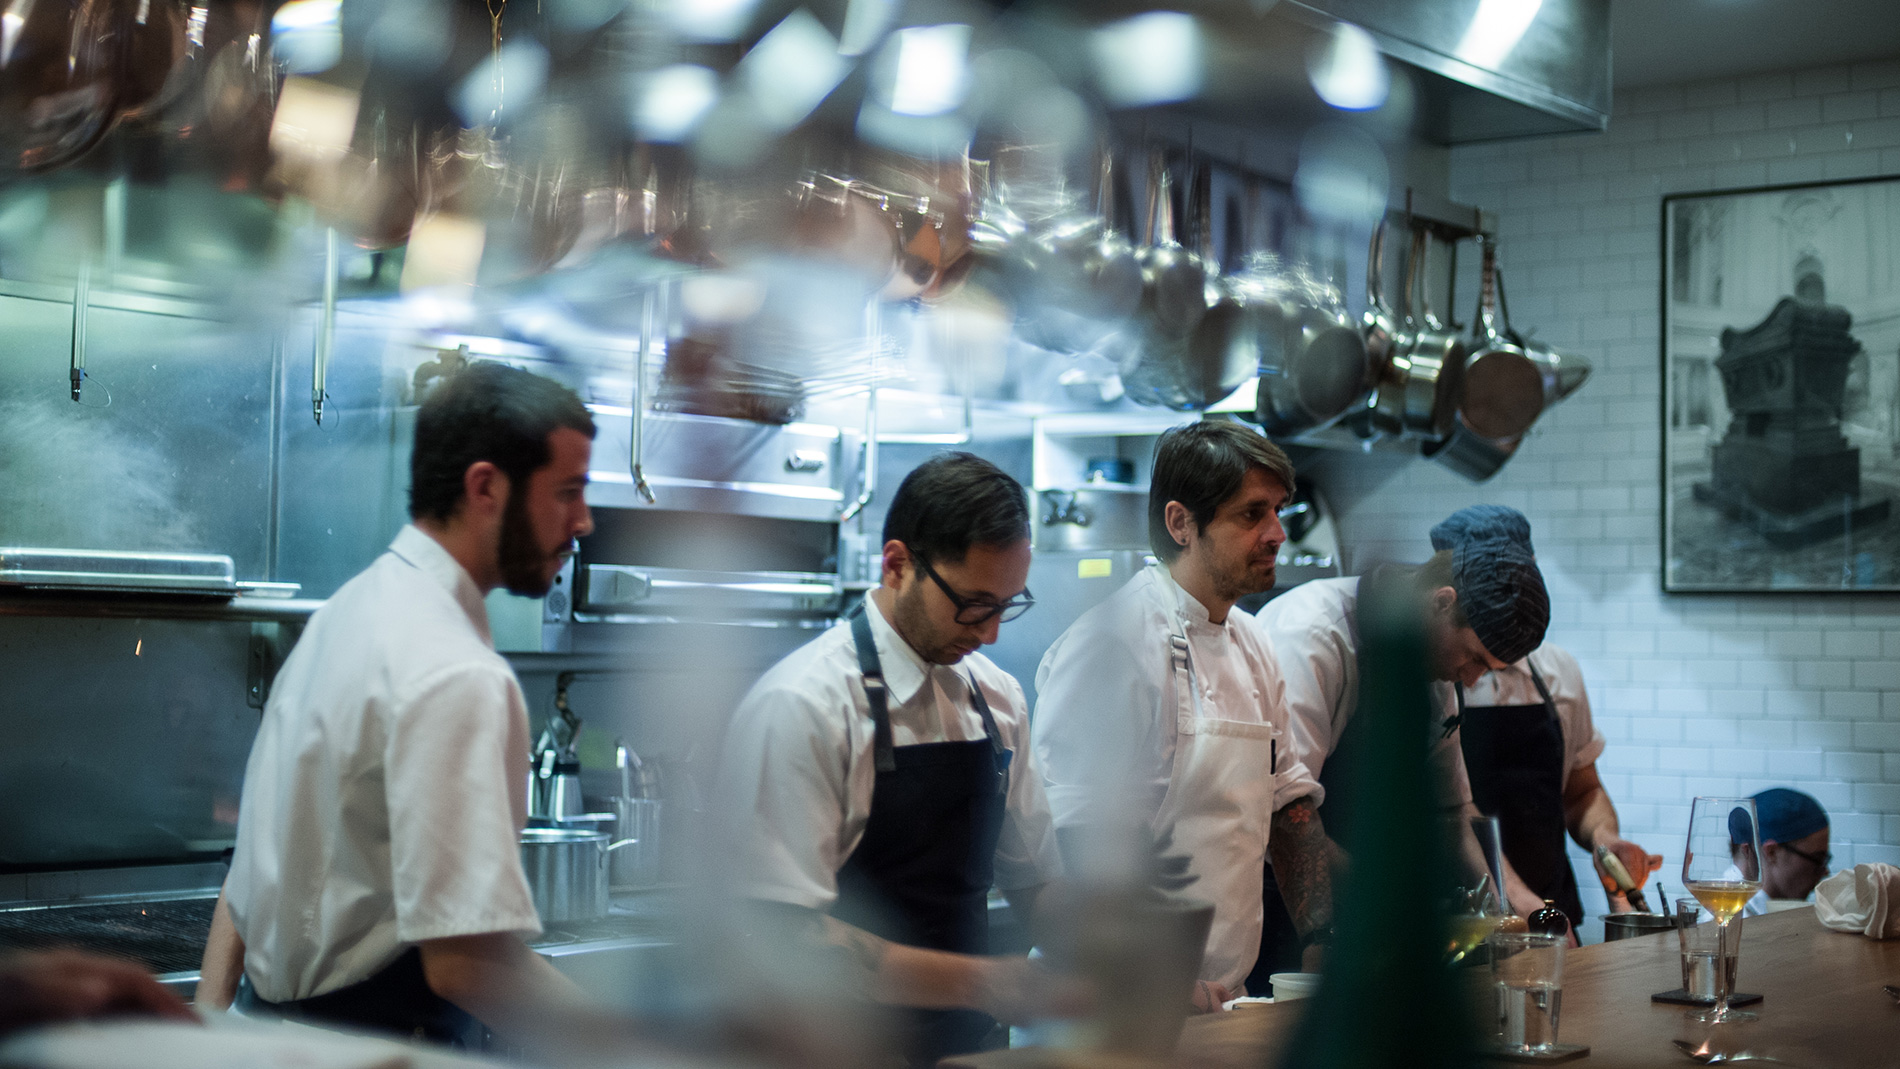 Best places to watch chefs at work in Los Angeles | CNN Travel